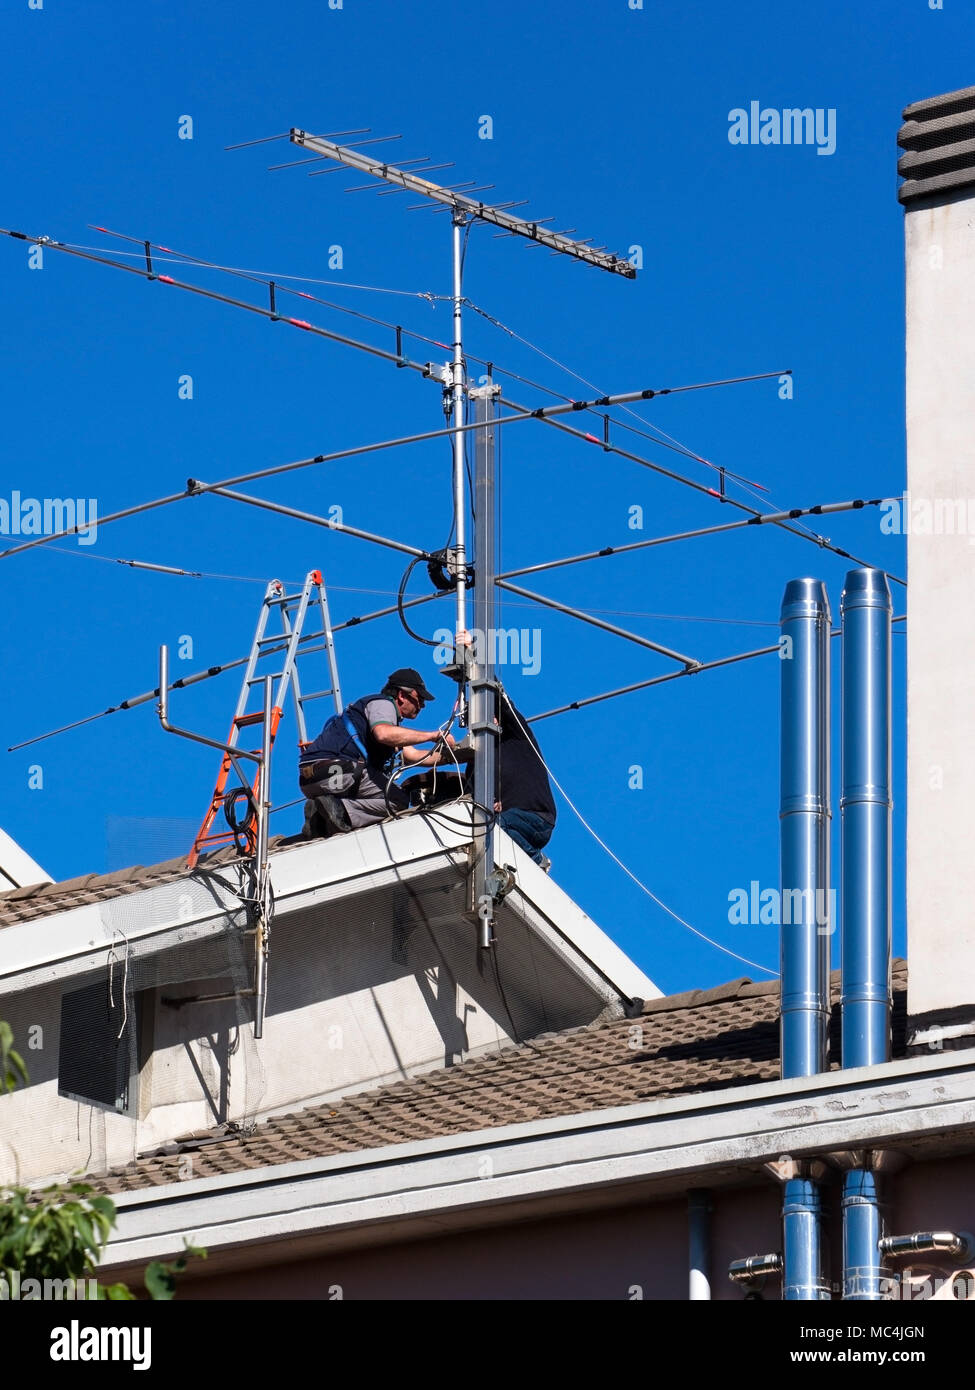 workers on the roof repair TV aerial - Stock Image